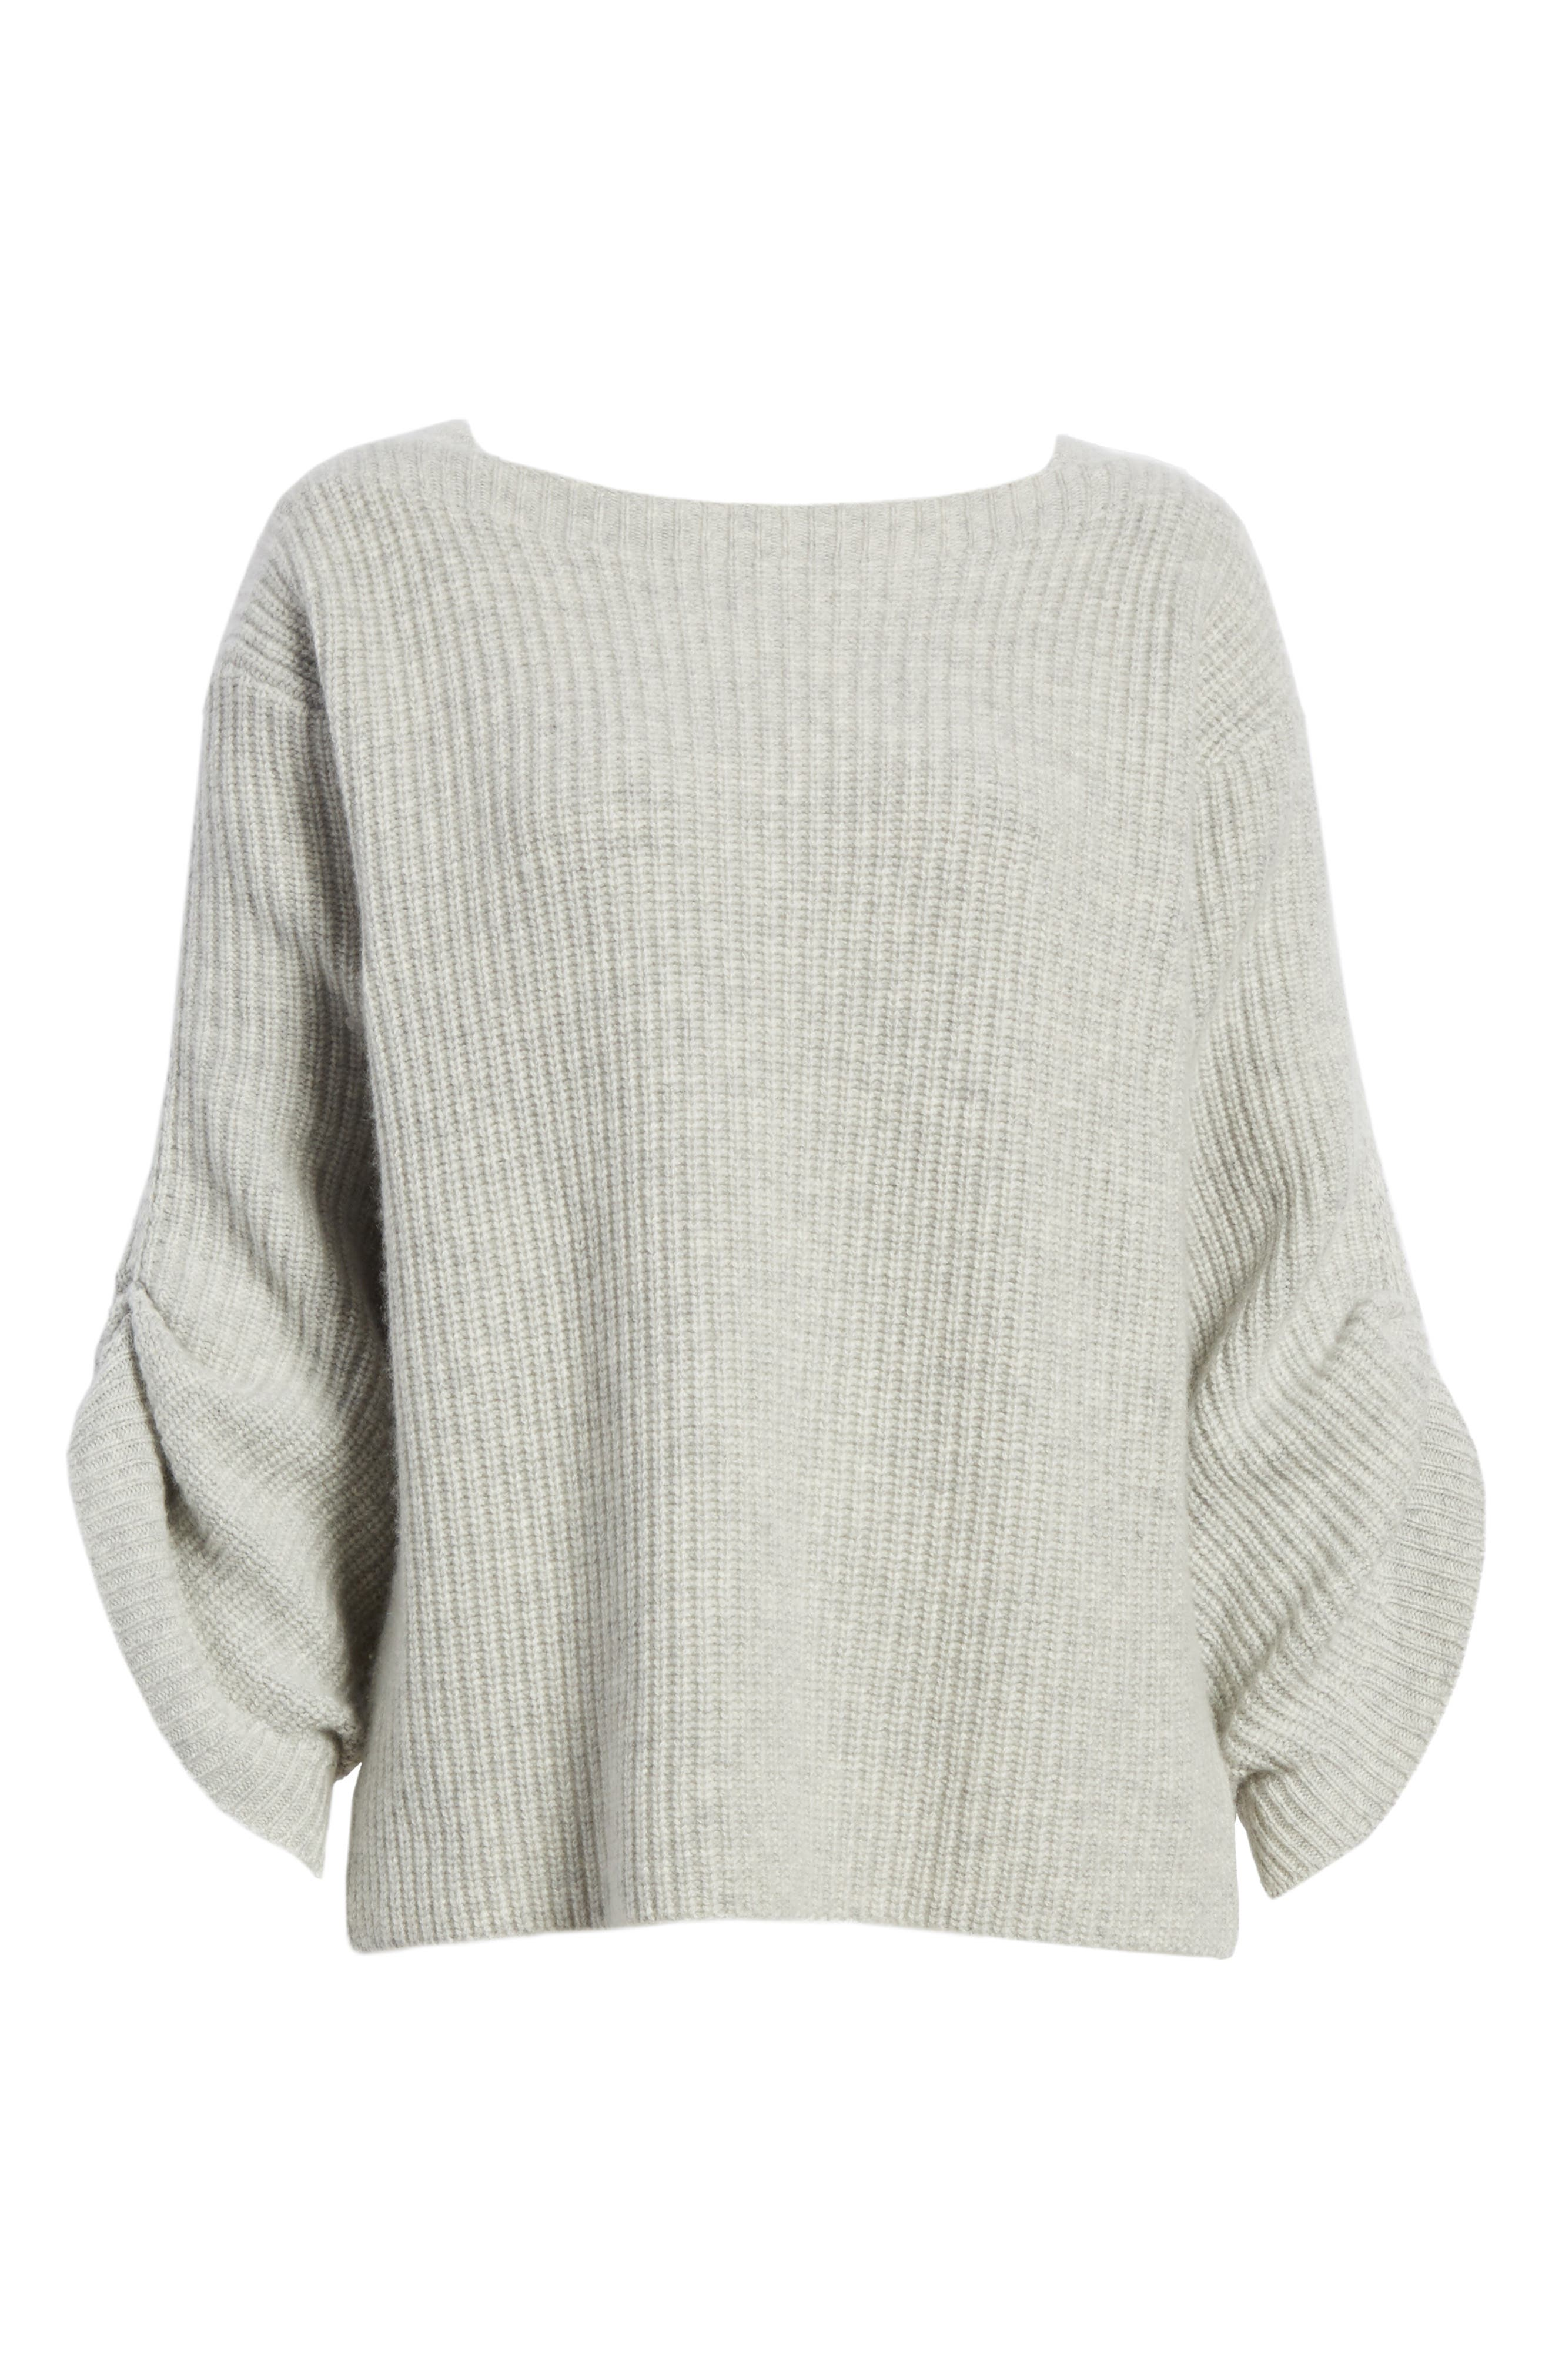 The Reva Boat Neck Wool & Cashmere Sweater,                             Alternate thumbnail 6, color,                             Gris Melange